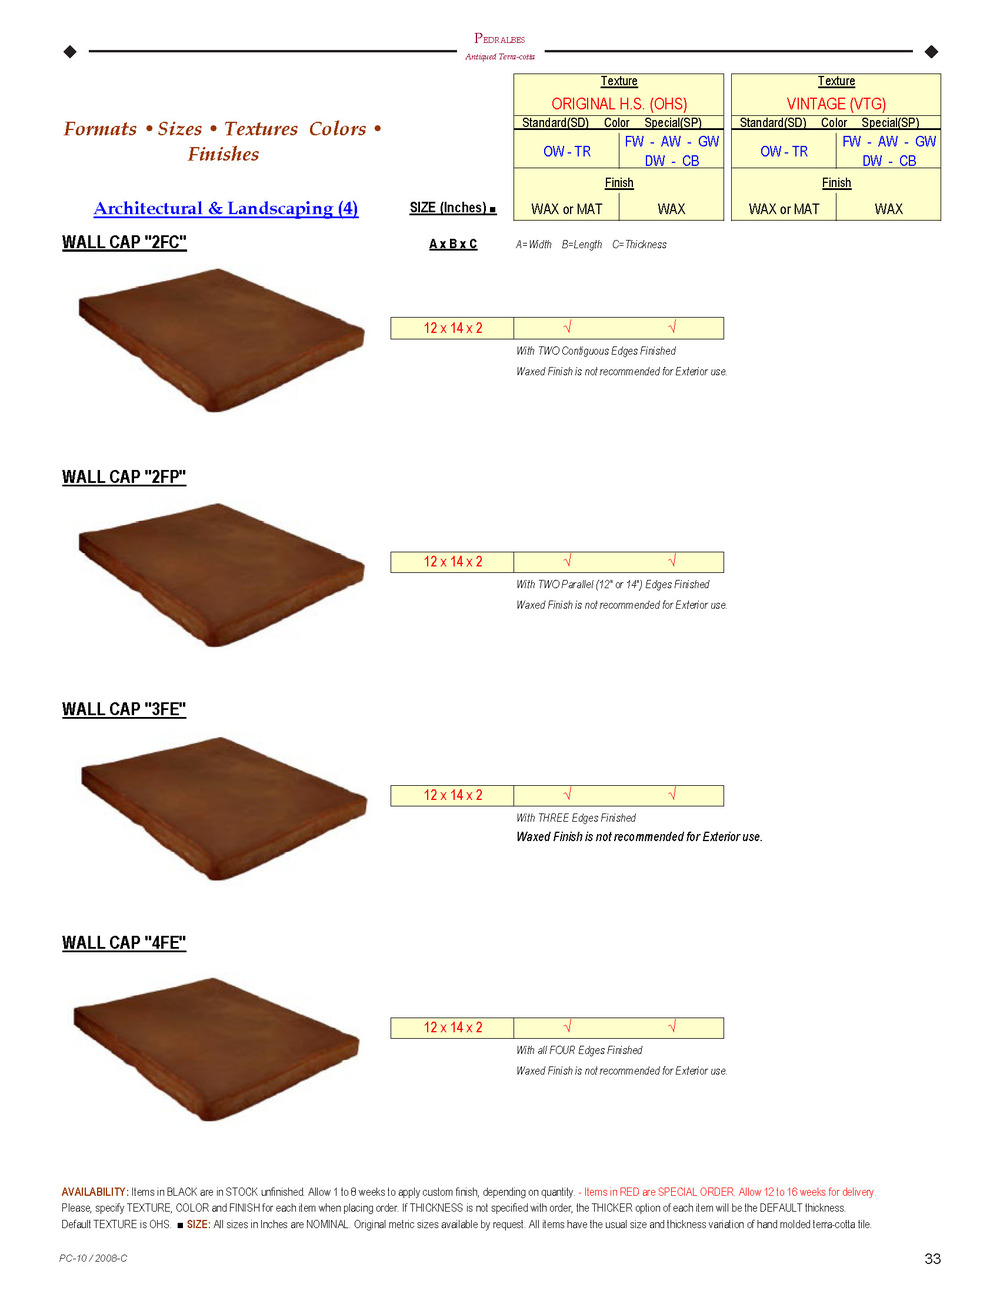 03-Formats+Sizes_Page_17.jpg